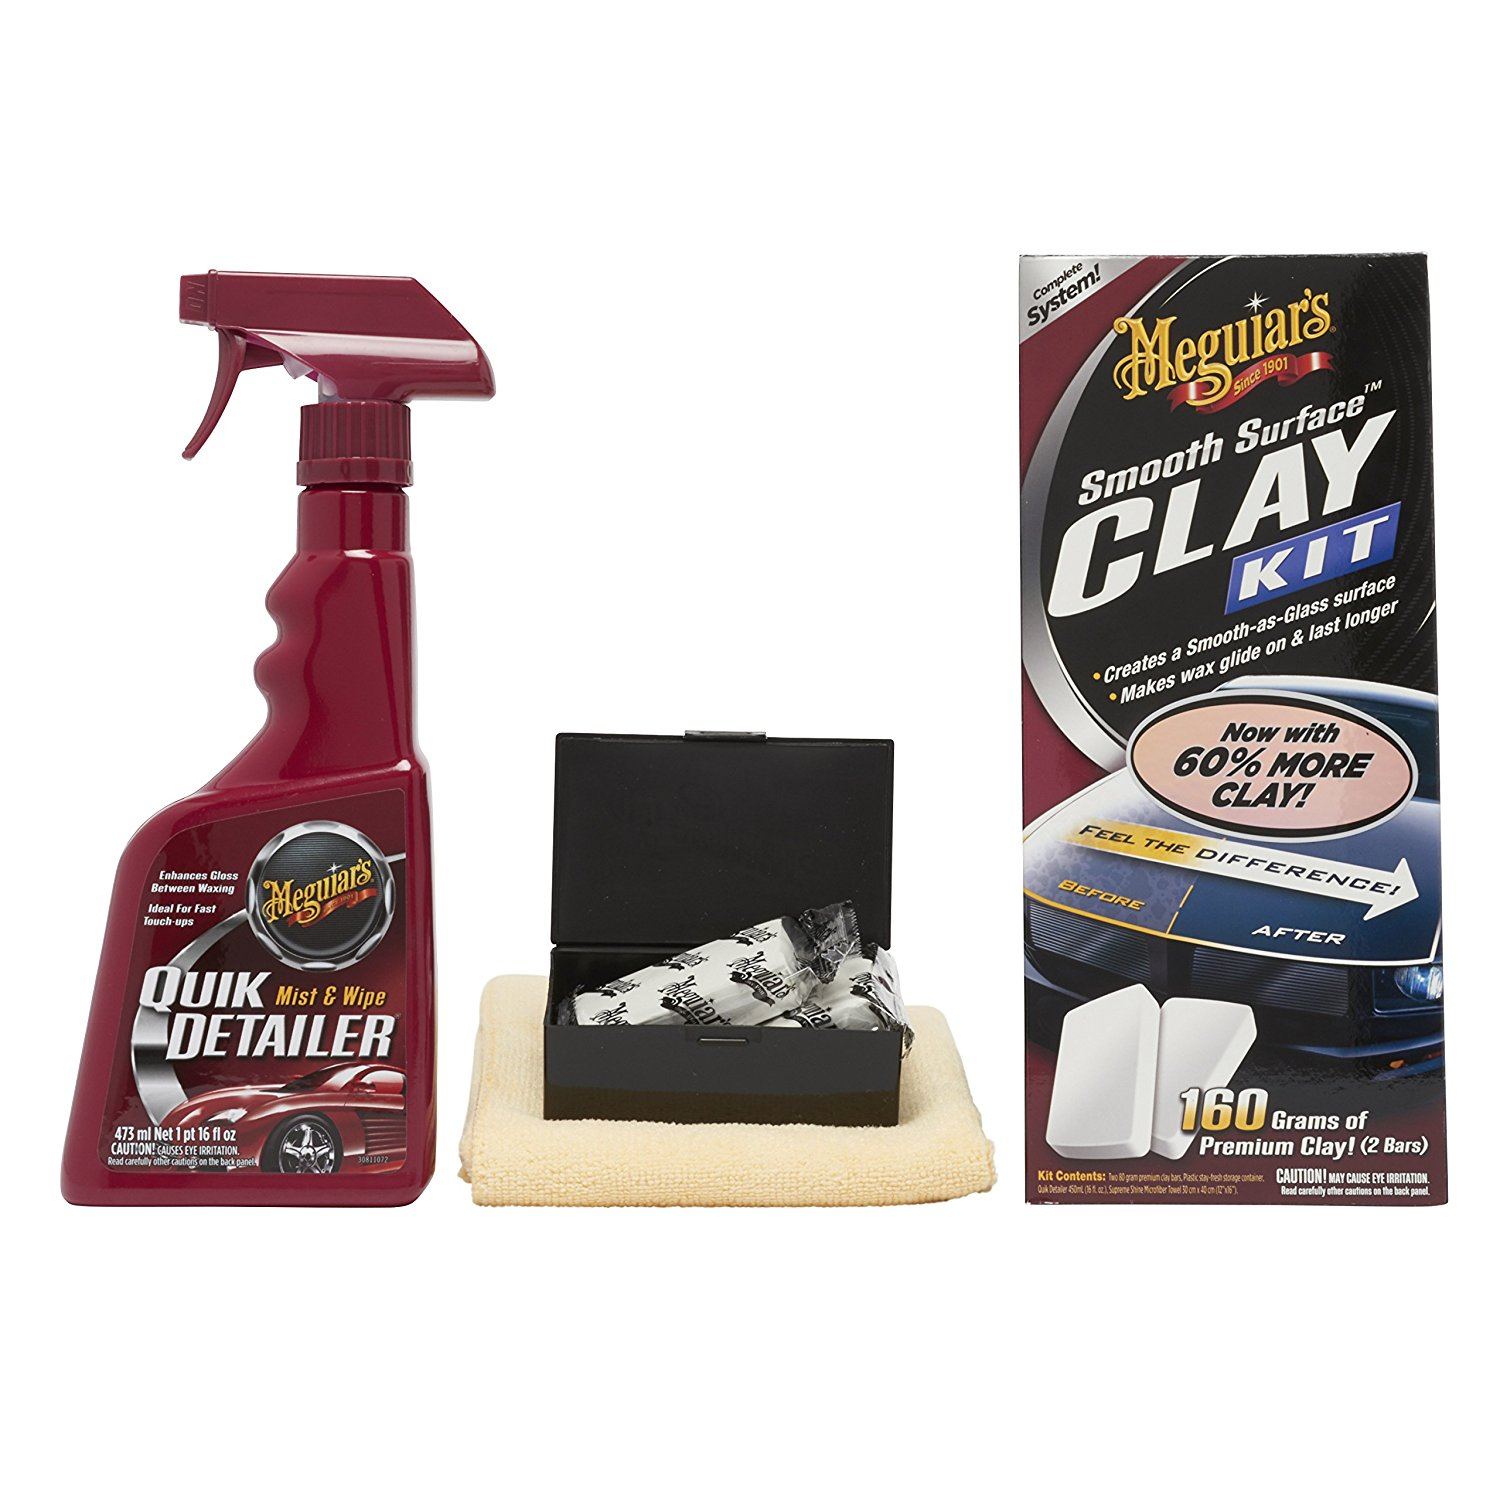 5 Best Clay Bar Kits For Your Car With Reviews - 2017